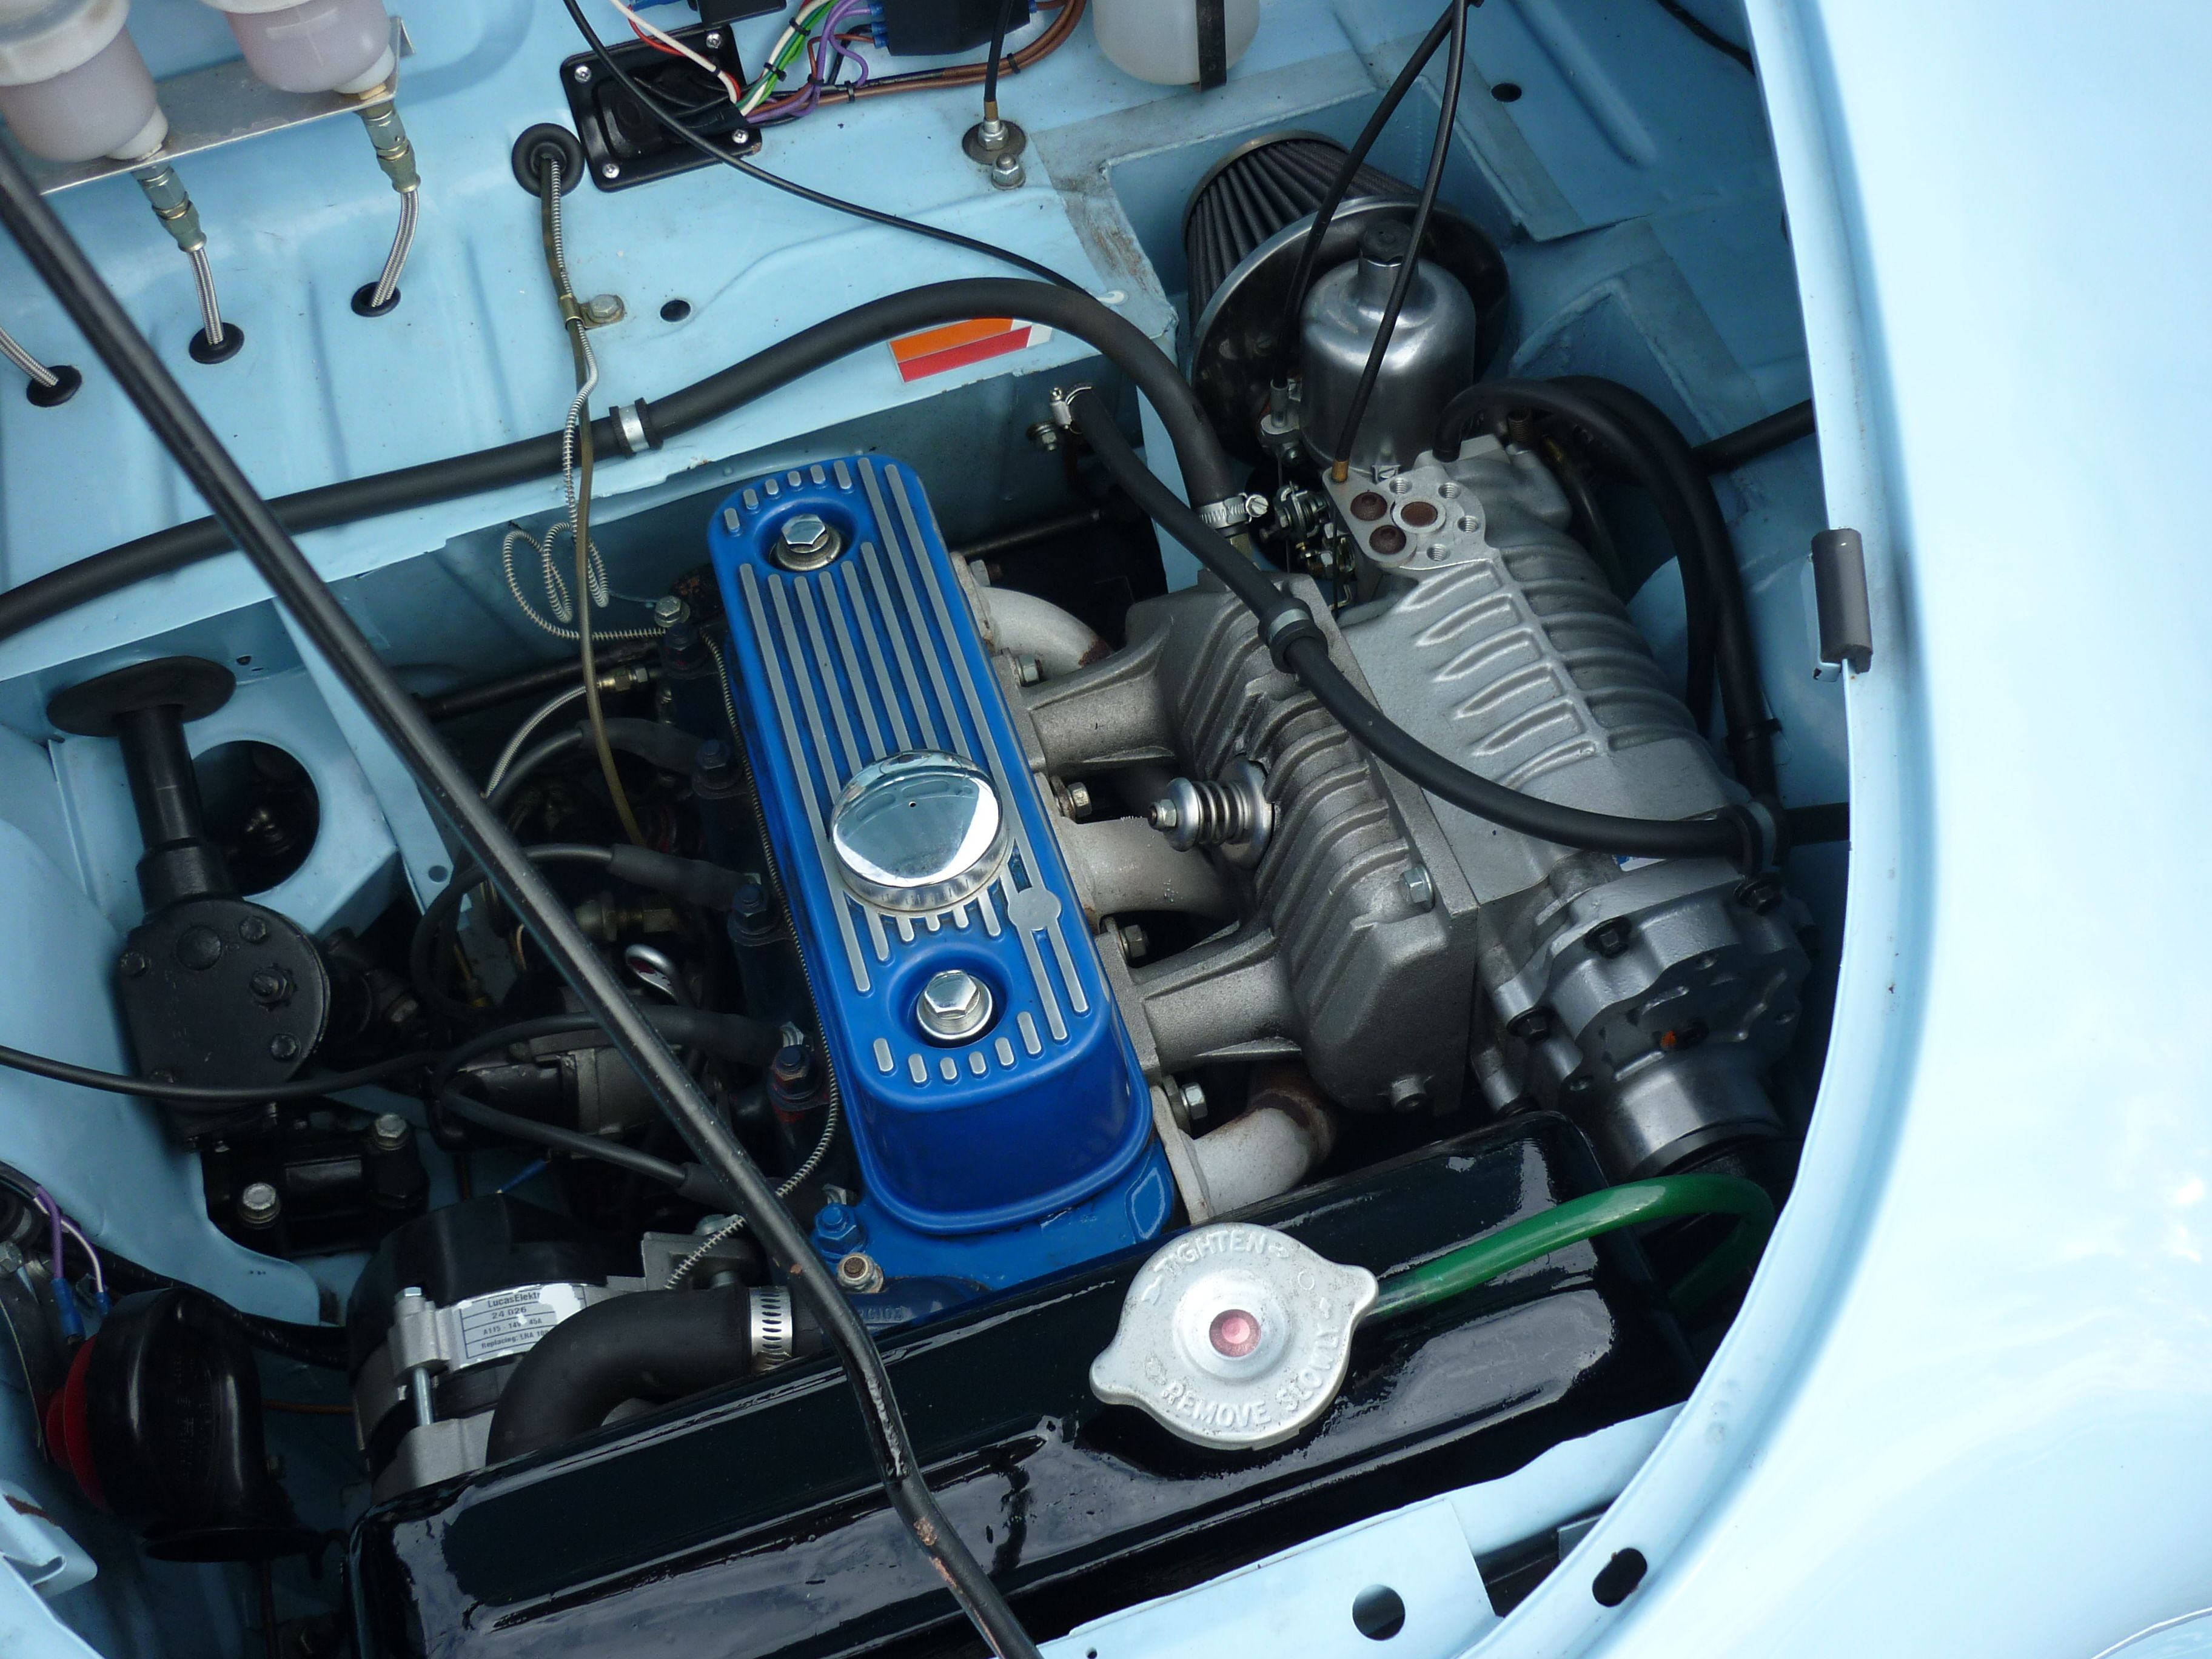 Pin by Greg Mackenzie on Classic race car | Pinterest | Engine and Cars